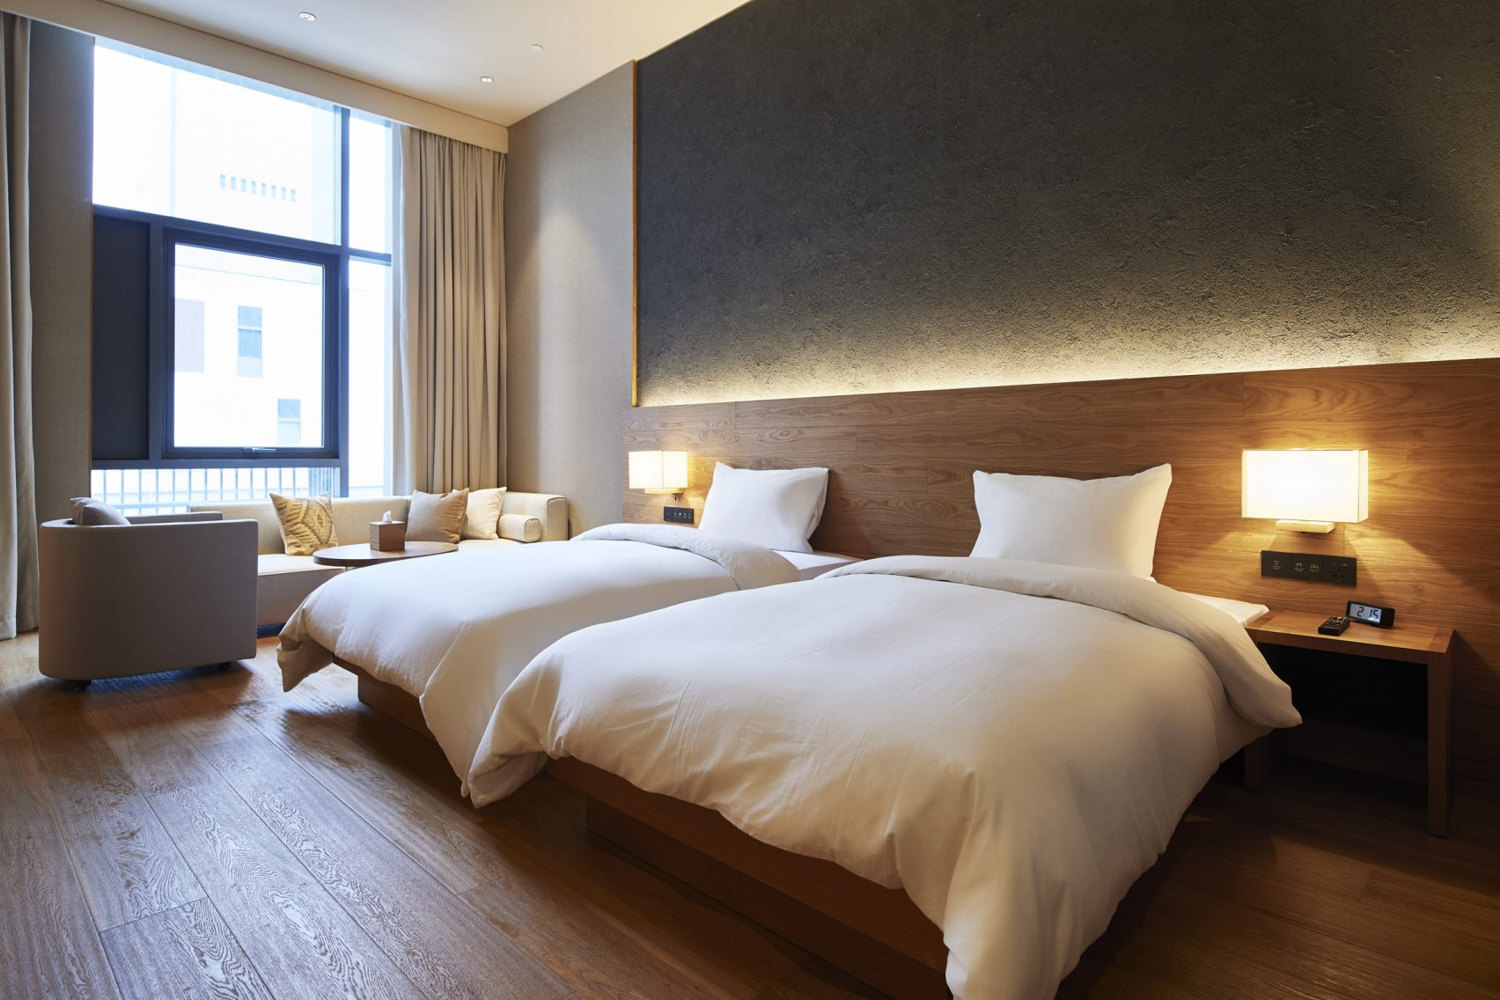 hotel room design trends, bedroom design ideas, italianbark interior design blog